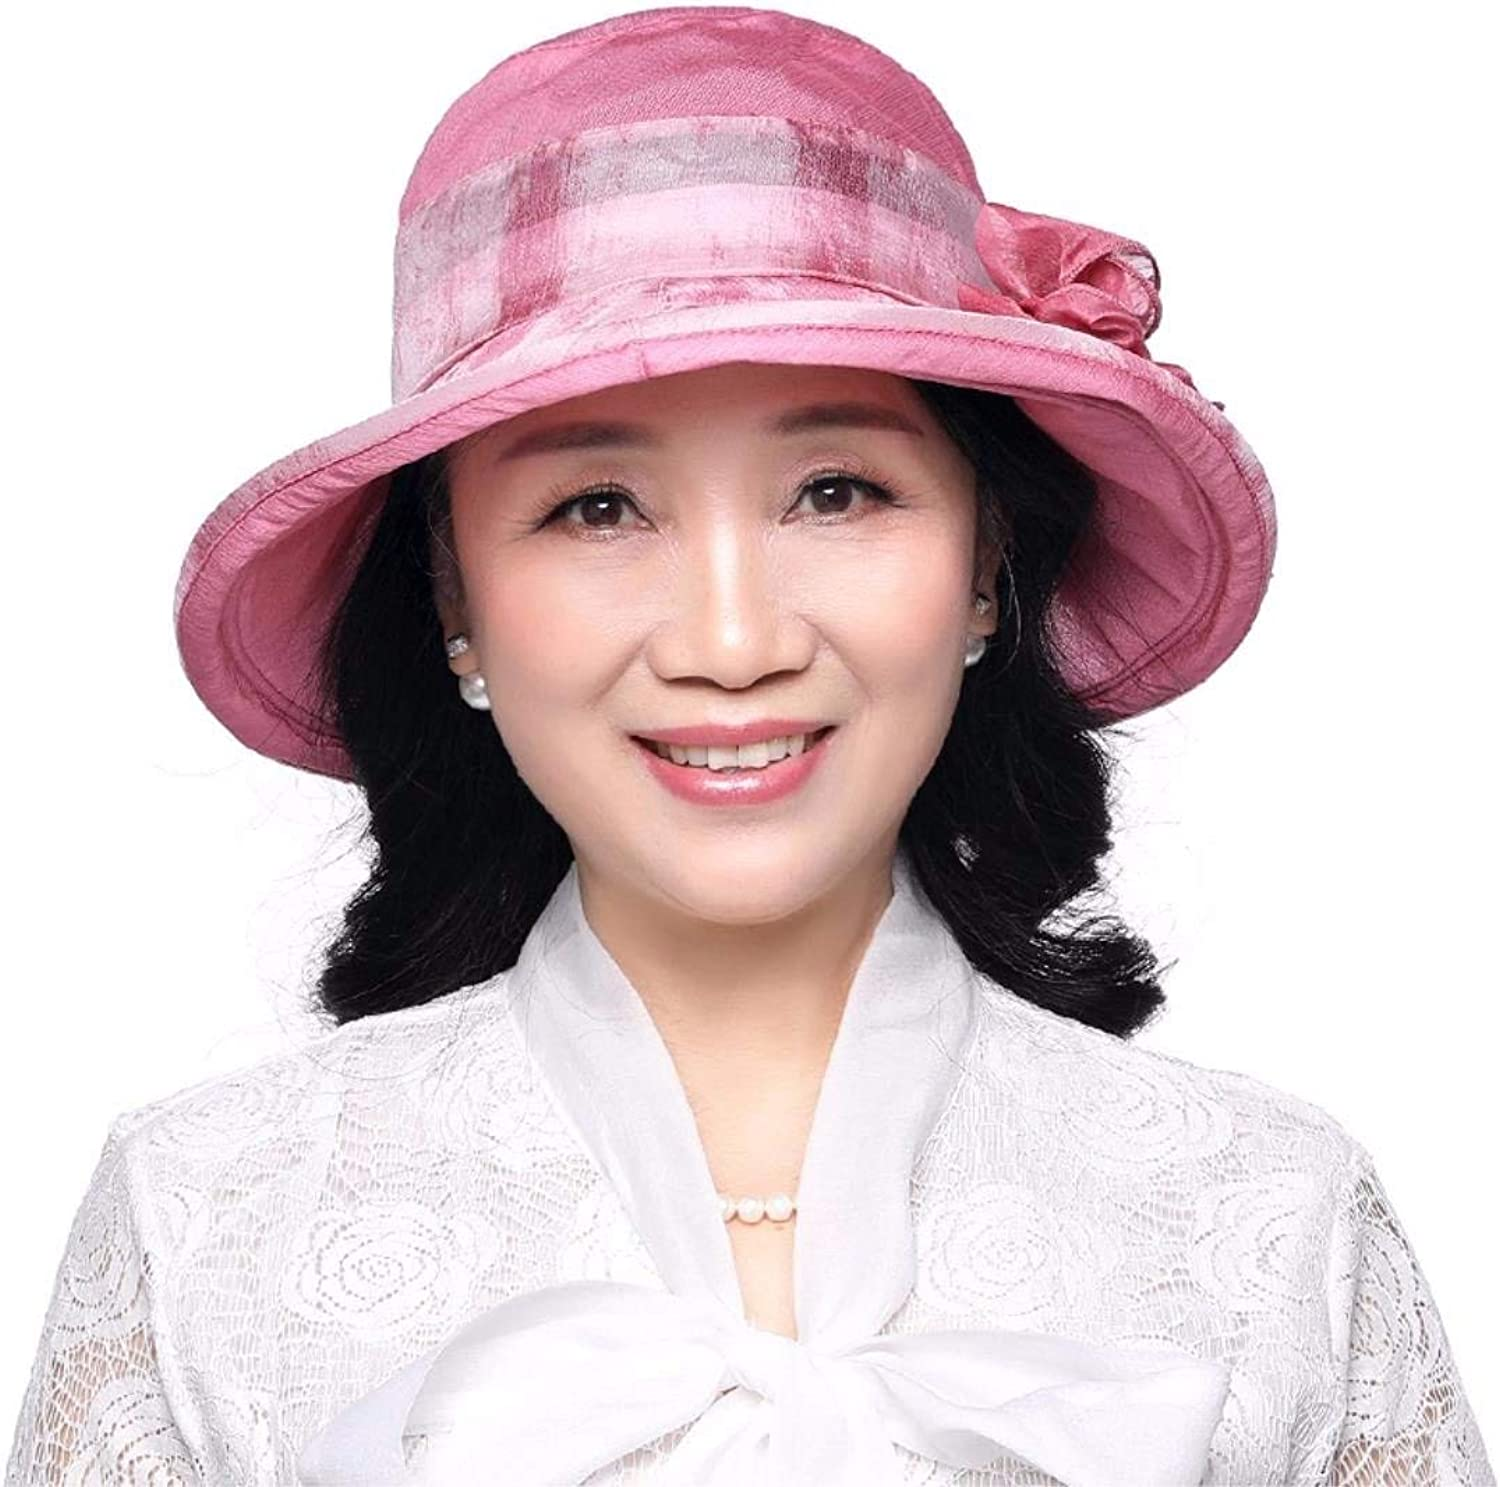 Chuiqingnet Gift for Mom Gift for grandmother Summer hat summer hat pot hat cloth hat fisherman hat street hat Beach Hat